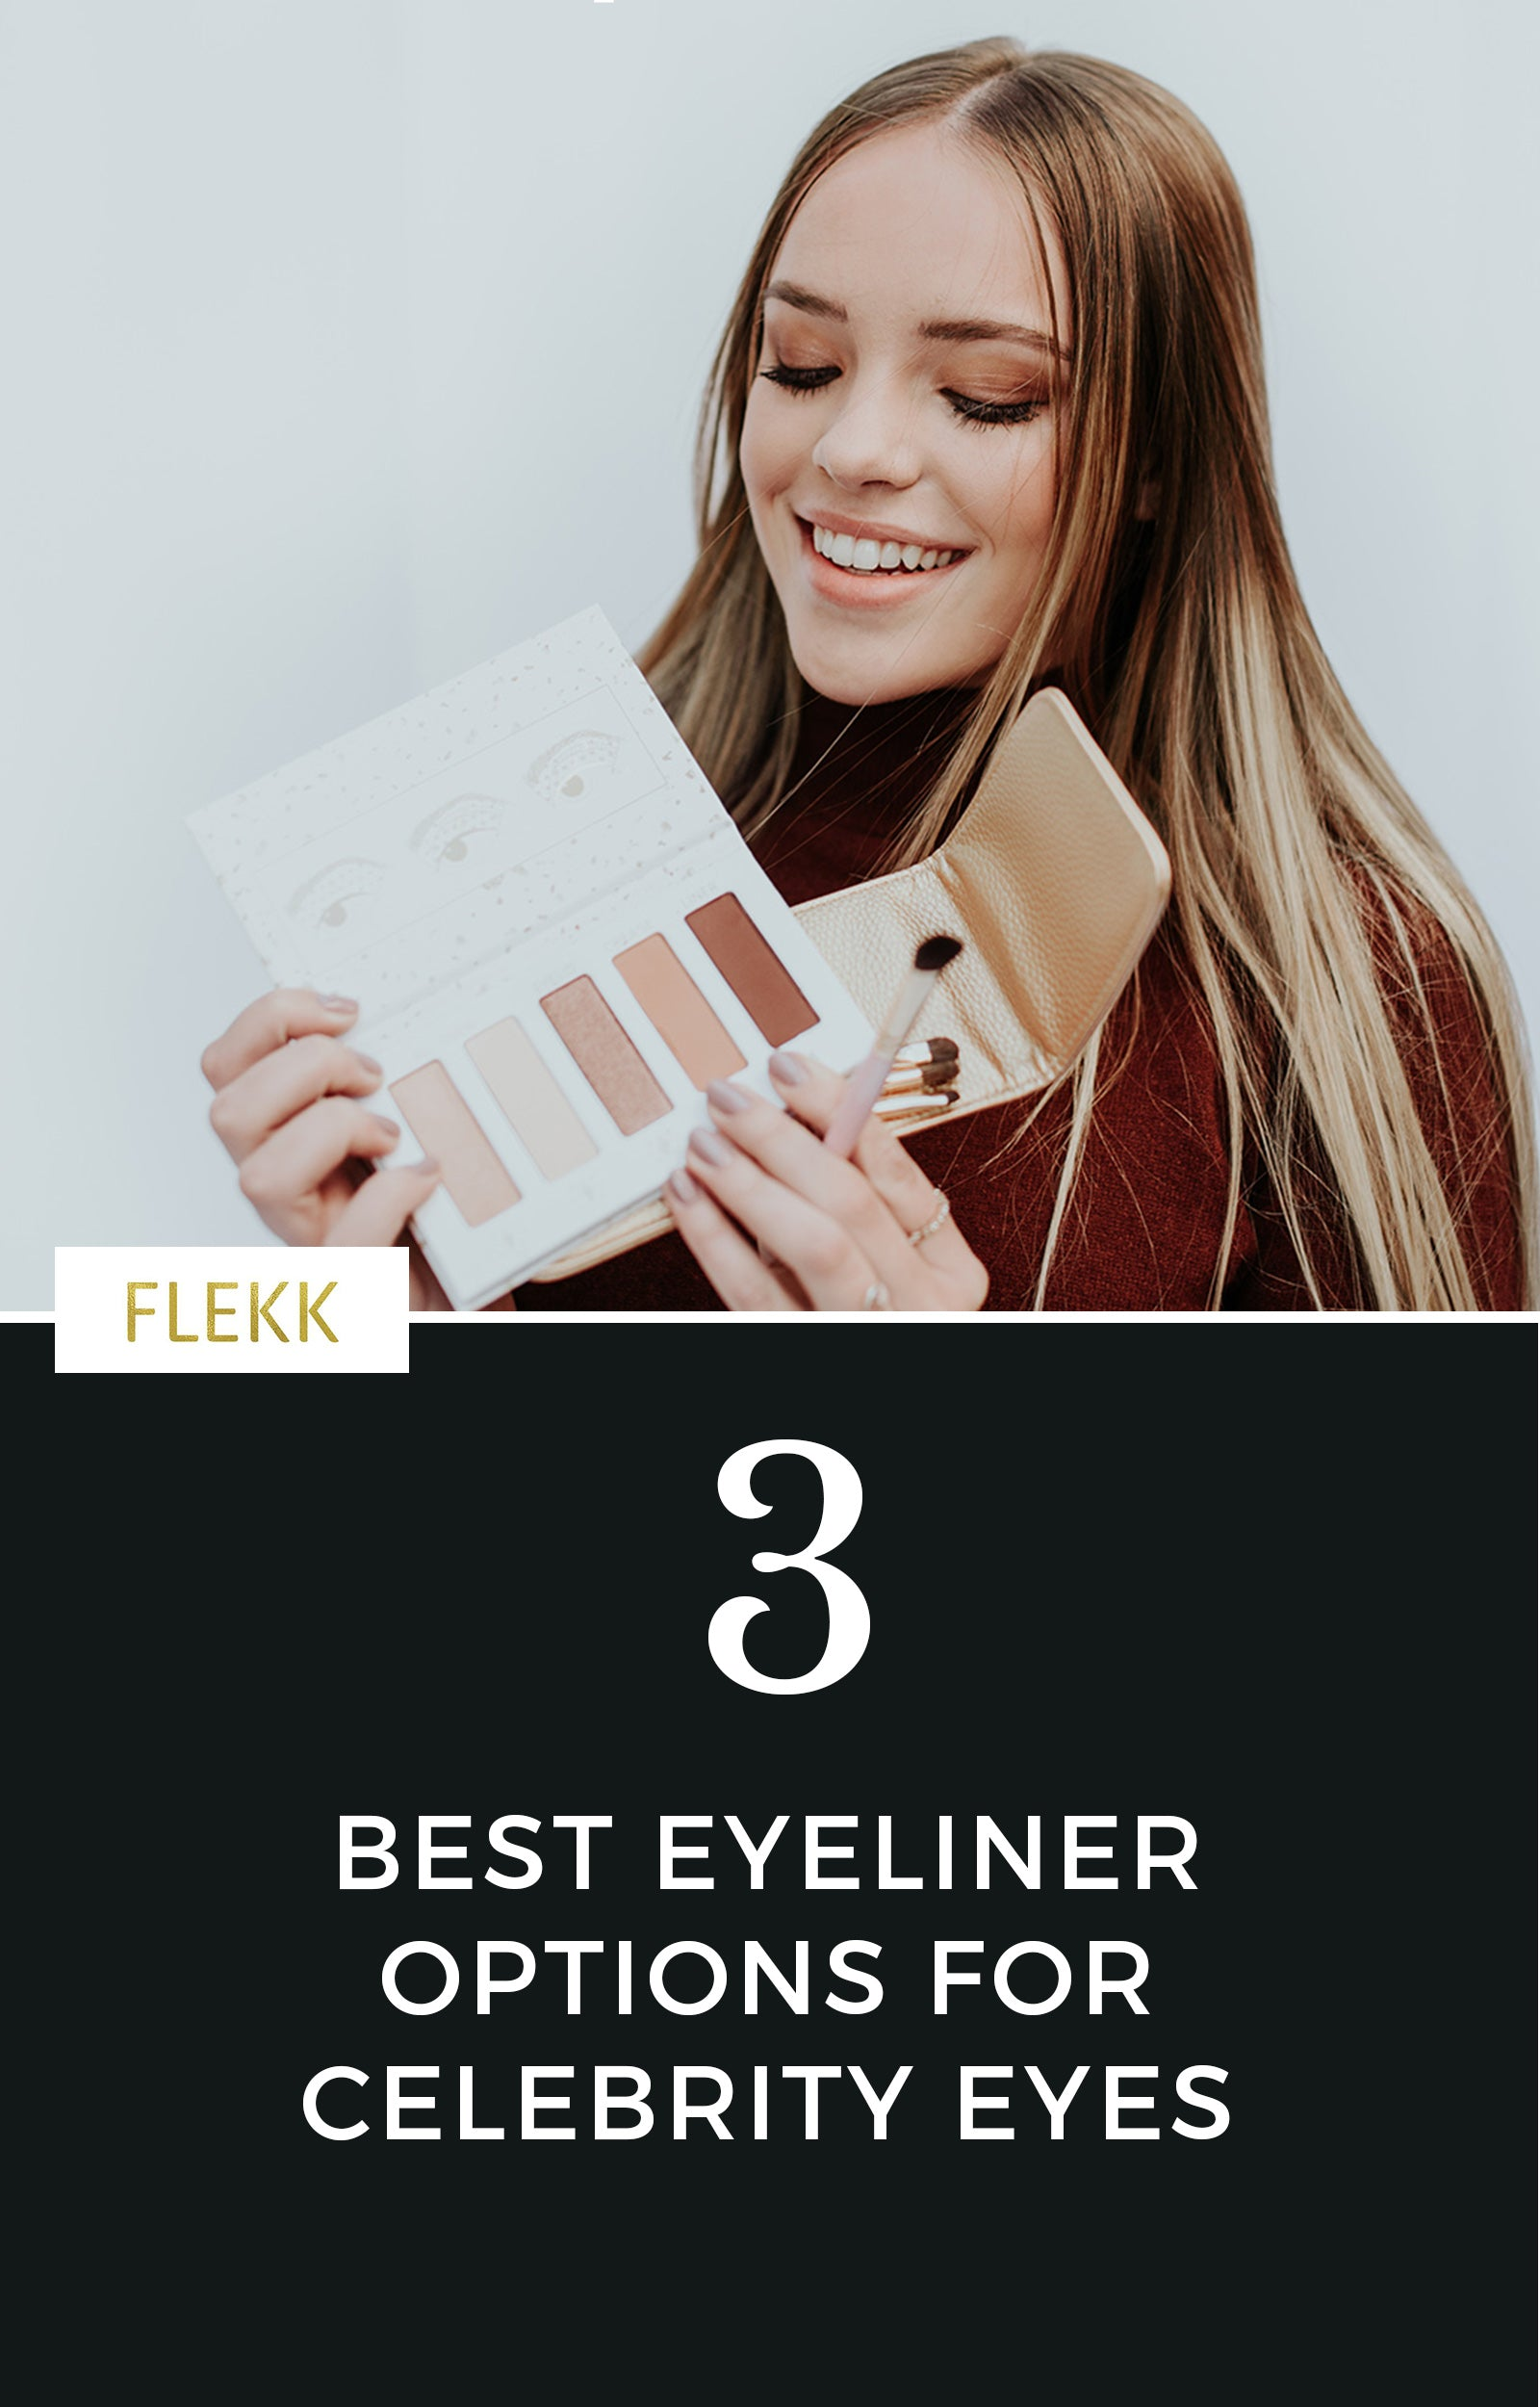 You may already know how incredible and easy powder eyeliner is to use. However, there are other great eyeliner options out there. Read on for my top 3 eyeliner recommendations to get celebrity eyes at home. #flekkcosmetics #celebrityeyes #makeuptips #eyeshadowtutorials #eyeliner #agingeyes #beautifullashes #smokeyeye